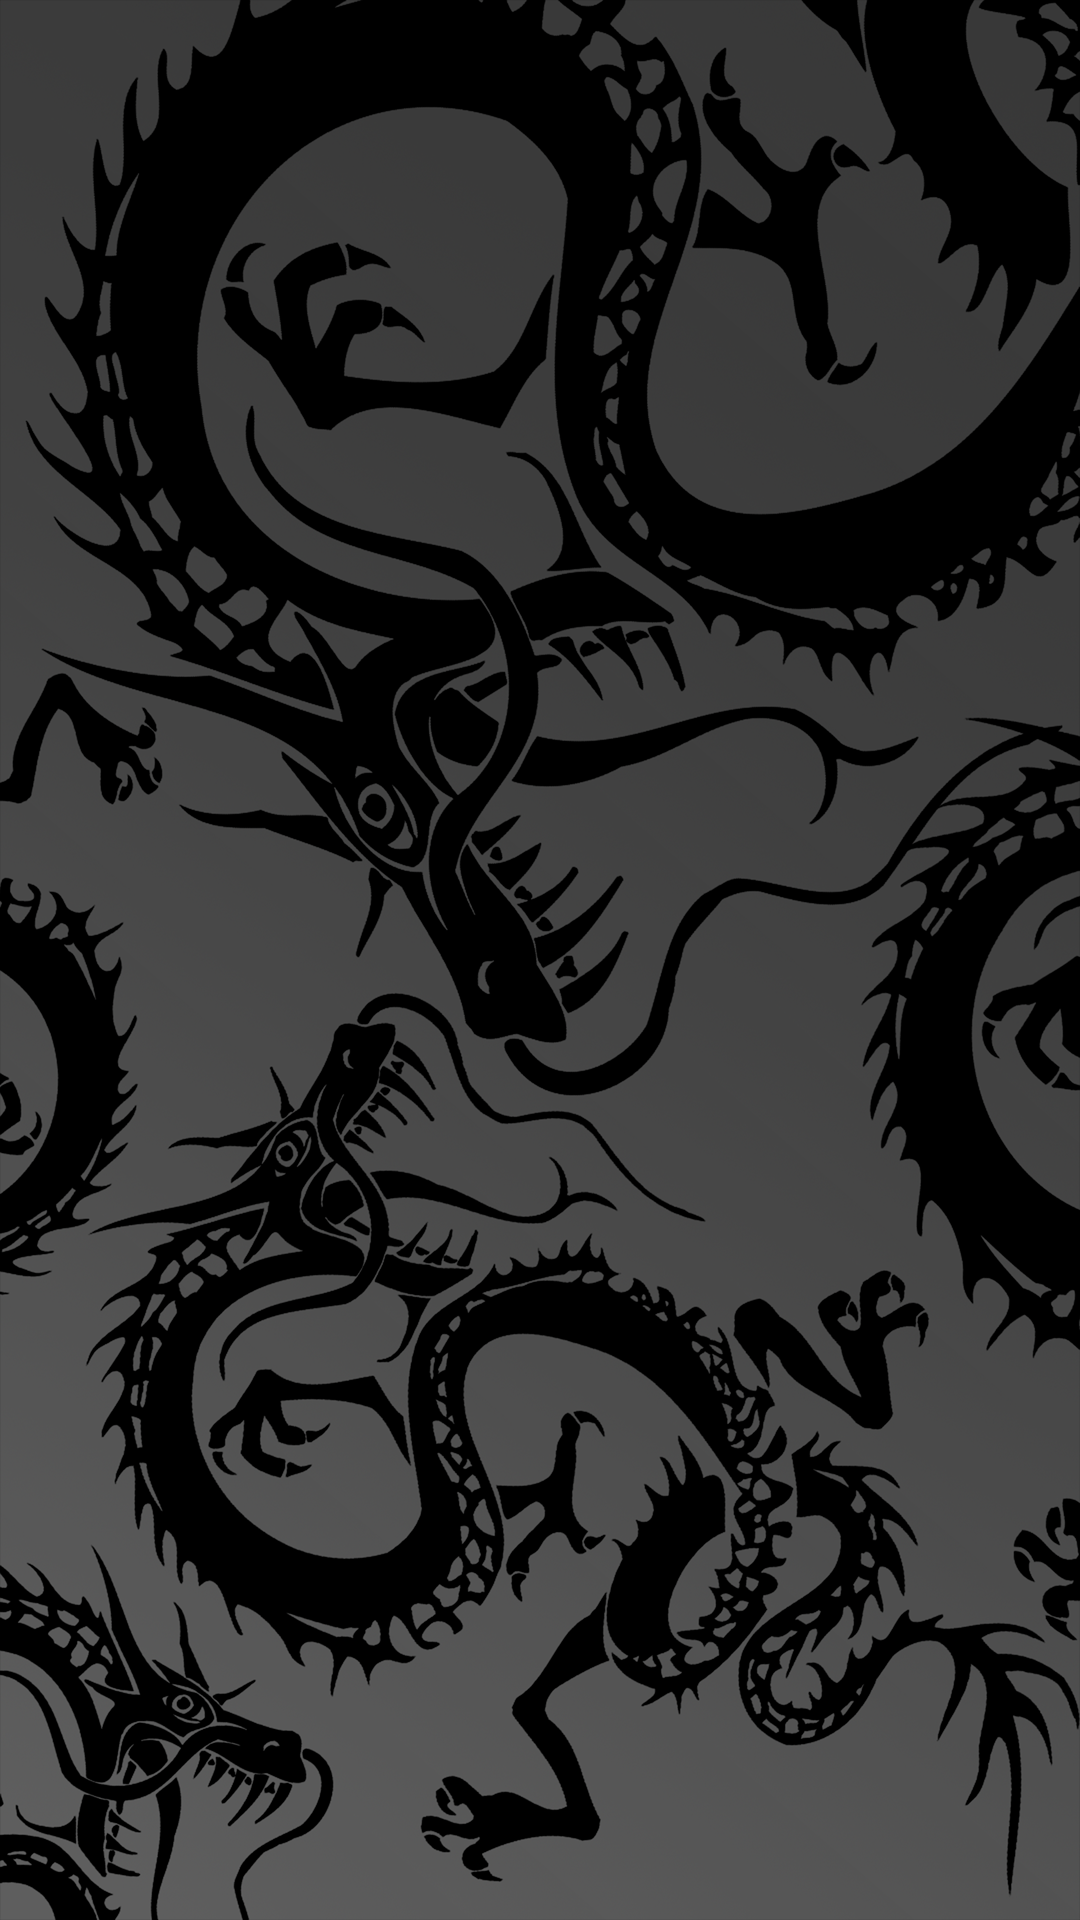 Download Our HD Black Dragon Wallpaper For Android Phones ...